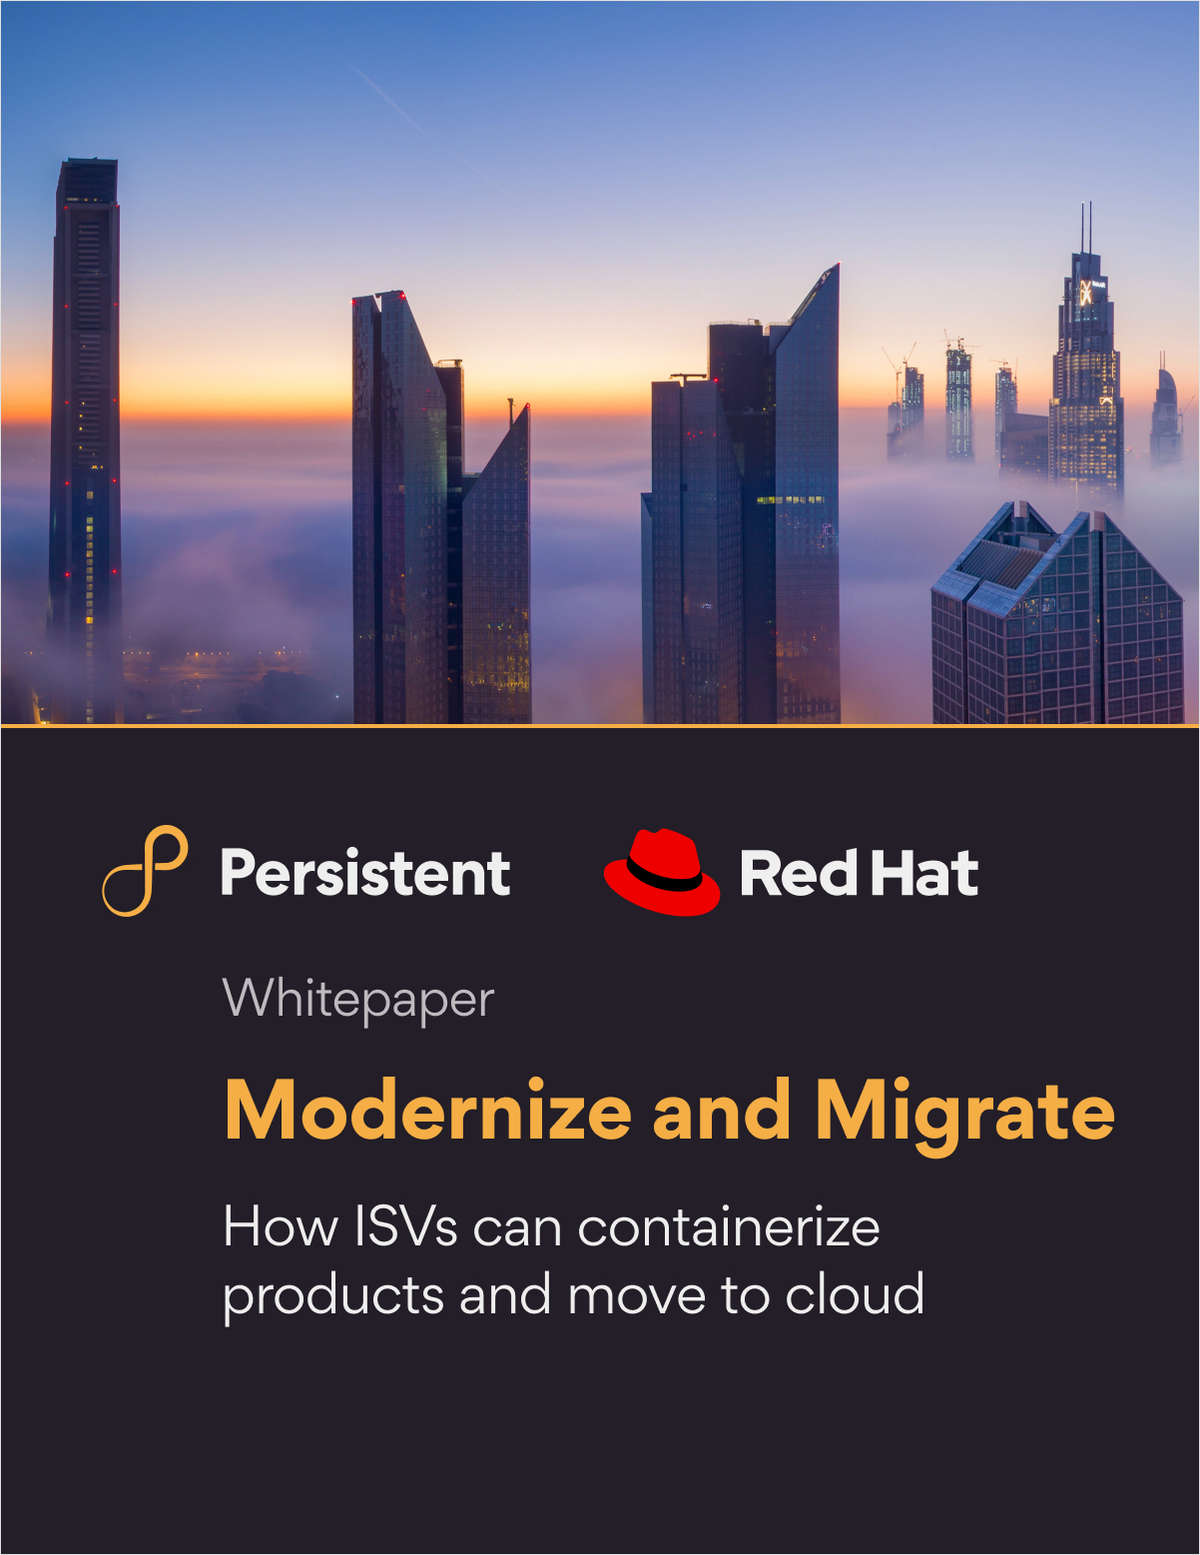 Modernize and Migrate: How ISVs Can Containerize Products and Move to Cloud